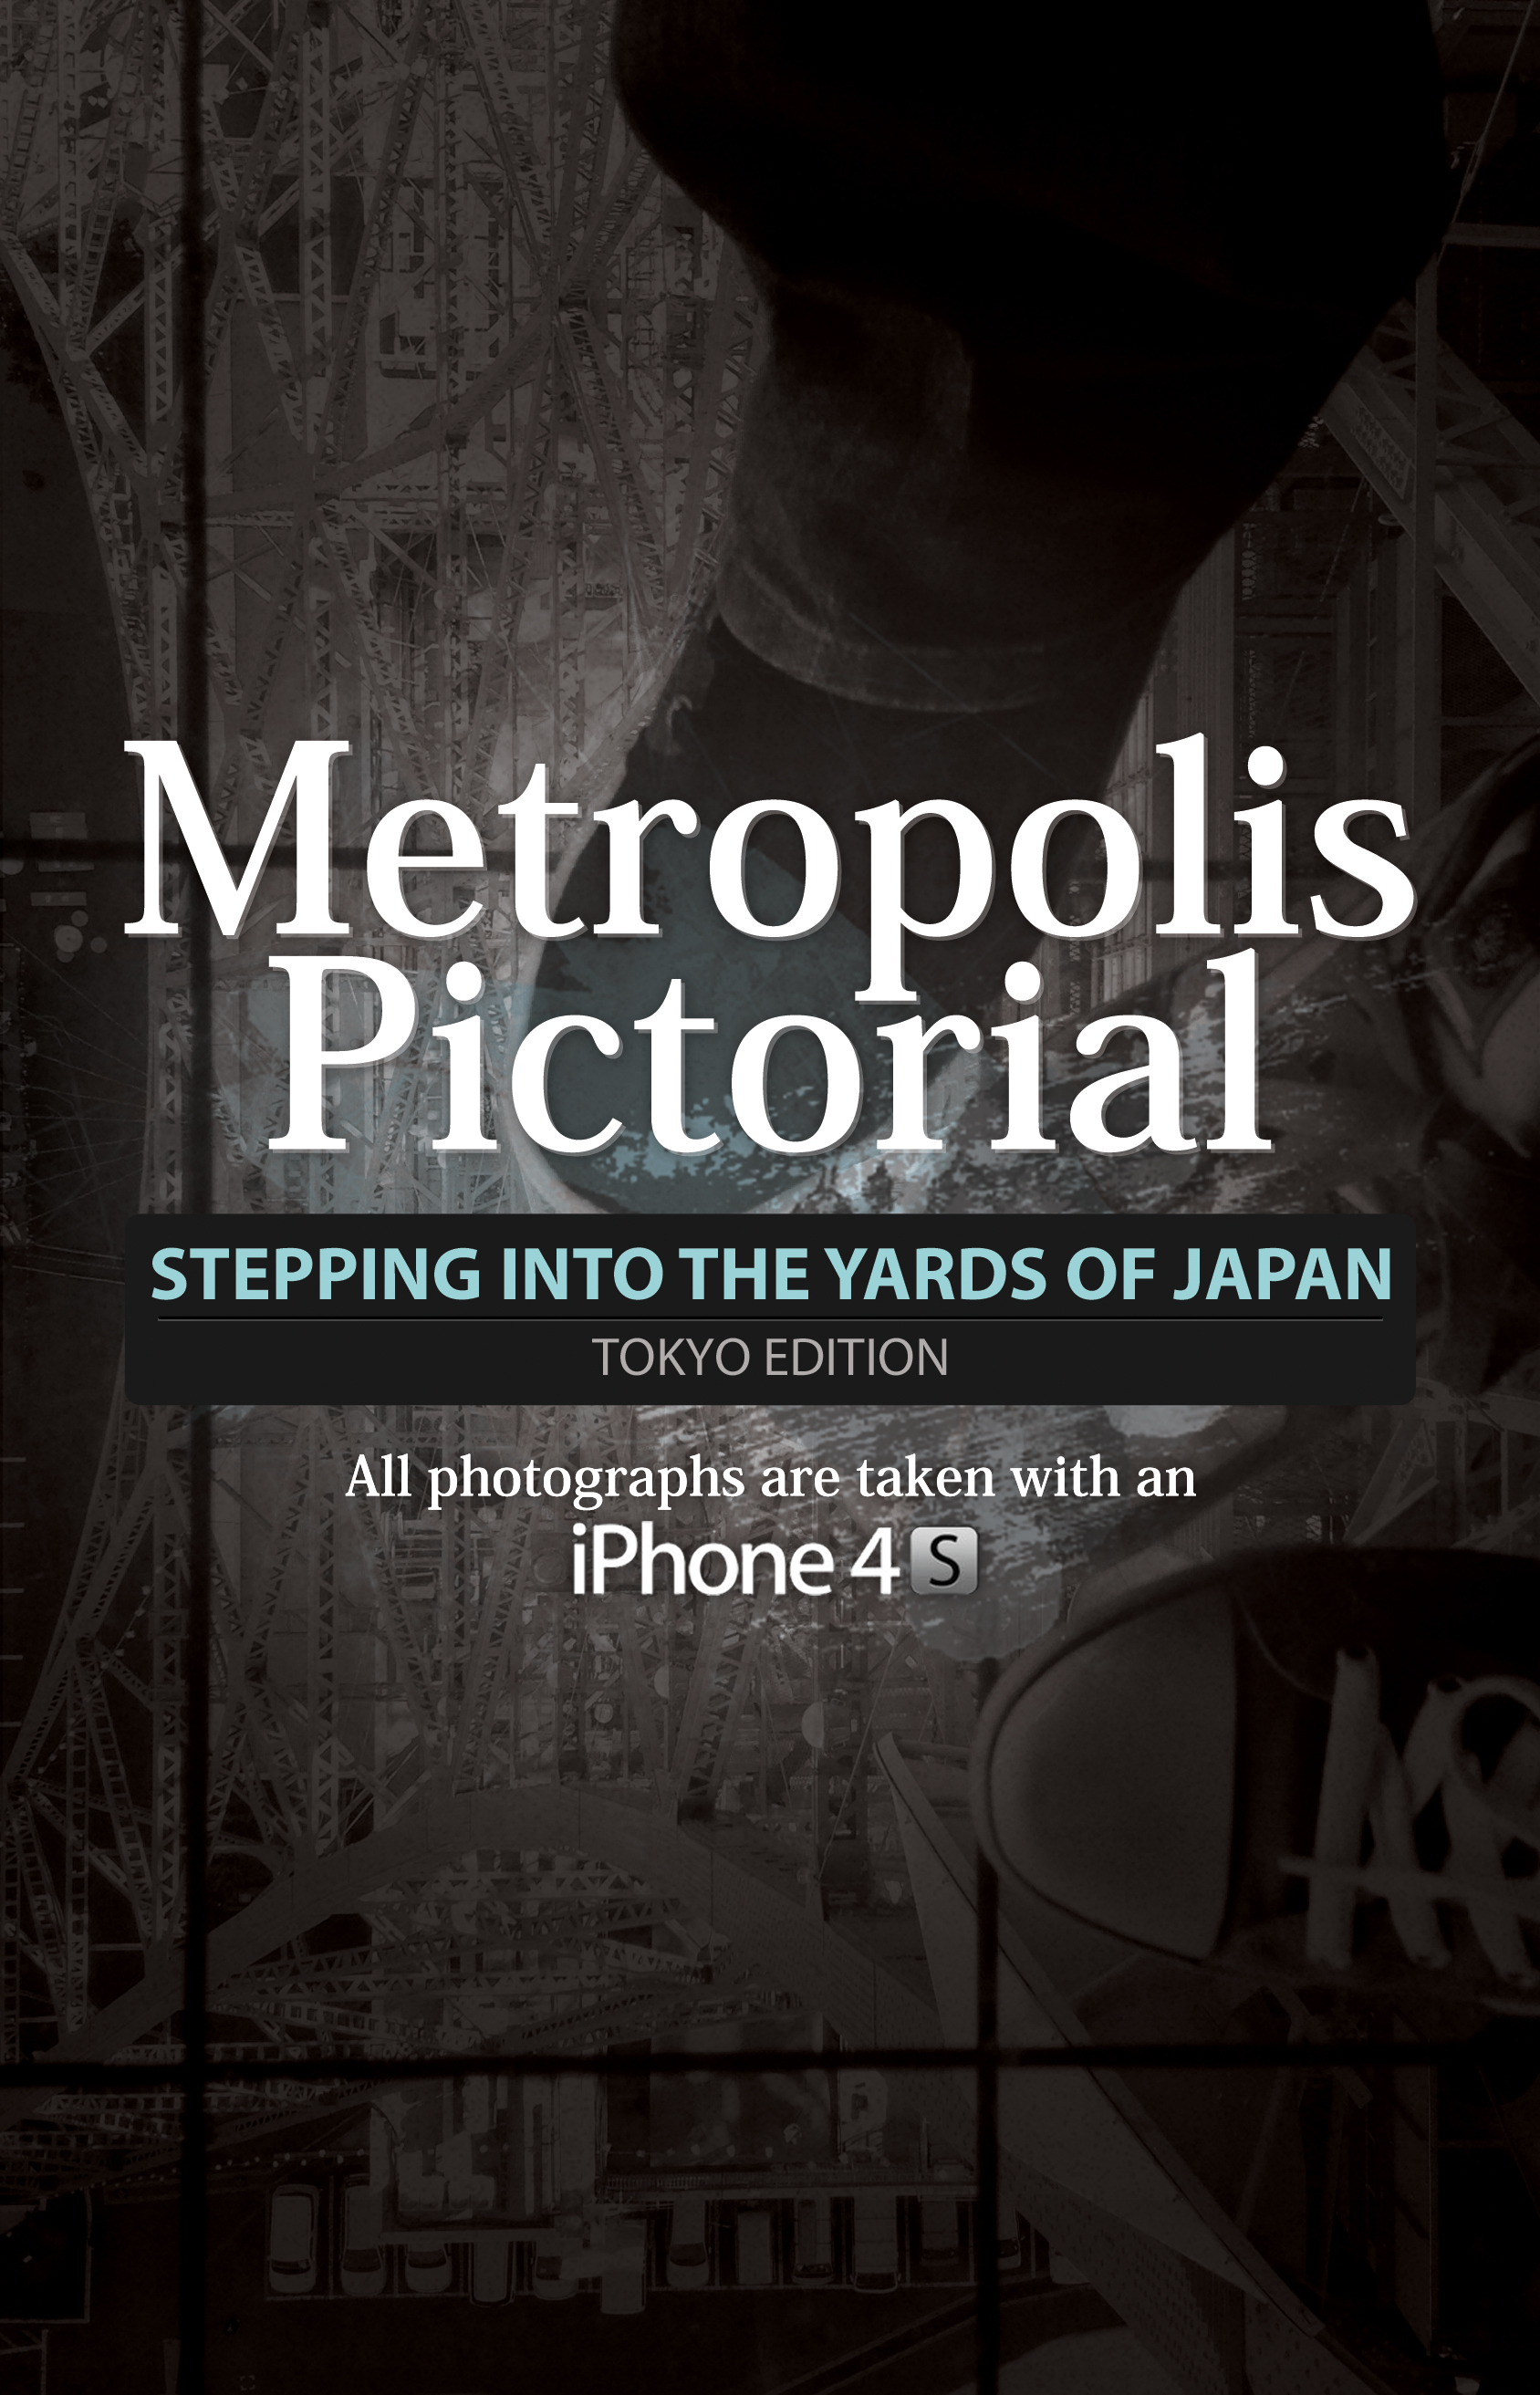 Metropolis Pictorial: Stepping Into The Yards Of Japan - Tokyo Edition